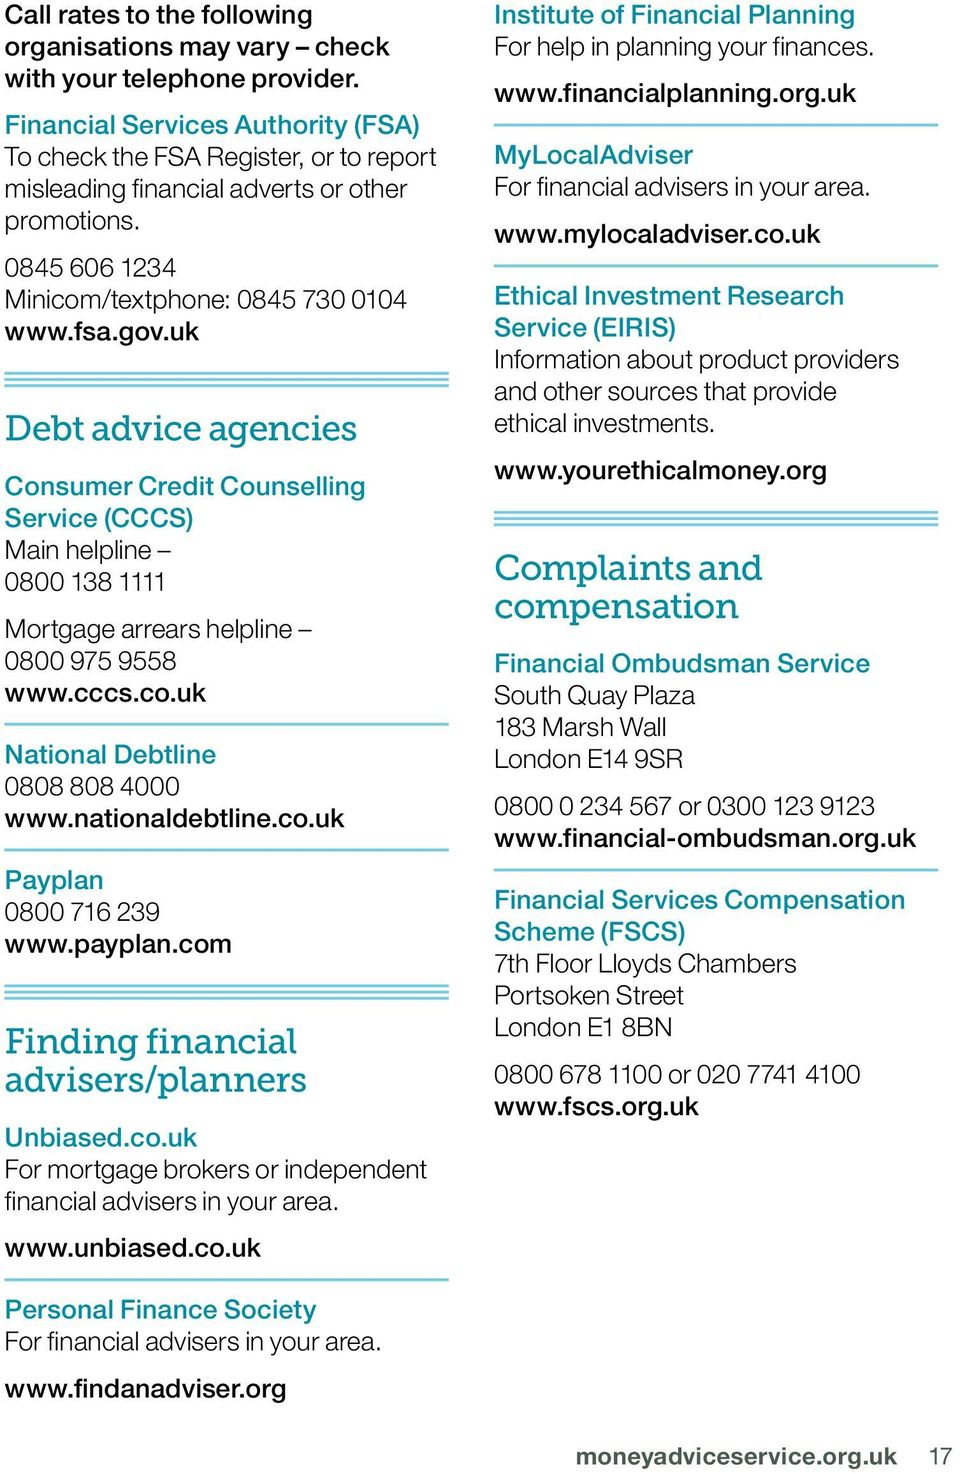 uk Debt advice agencies Consumer Credit Counselling Service (CCCS) Main helpline 0800 138 1111 Mortgage arrears helpline 0800 975 9558 www.cccs.co.uk National Debtline 0808 808 4000 www.